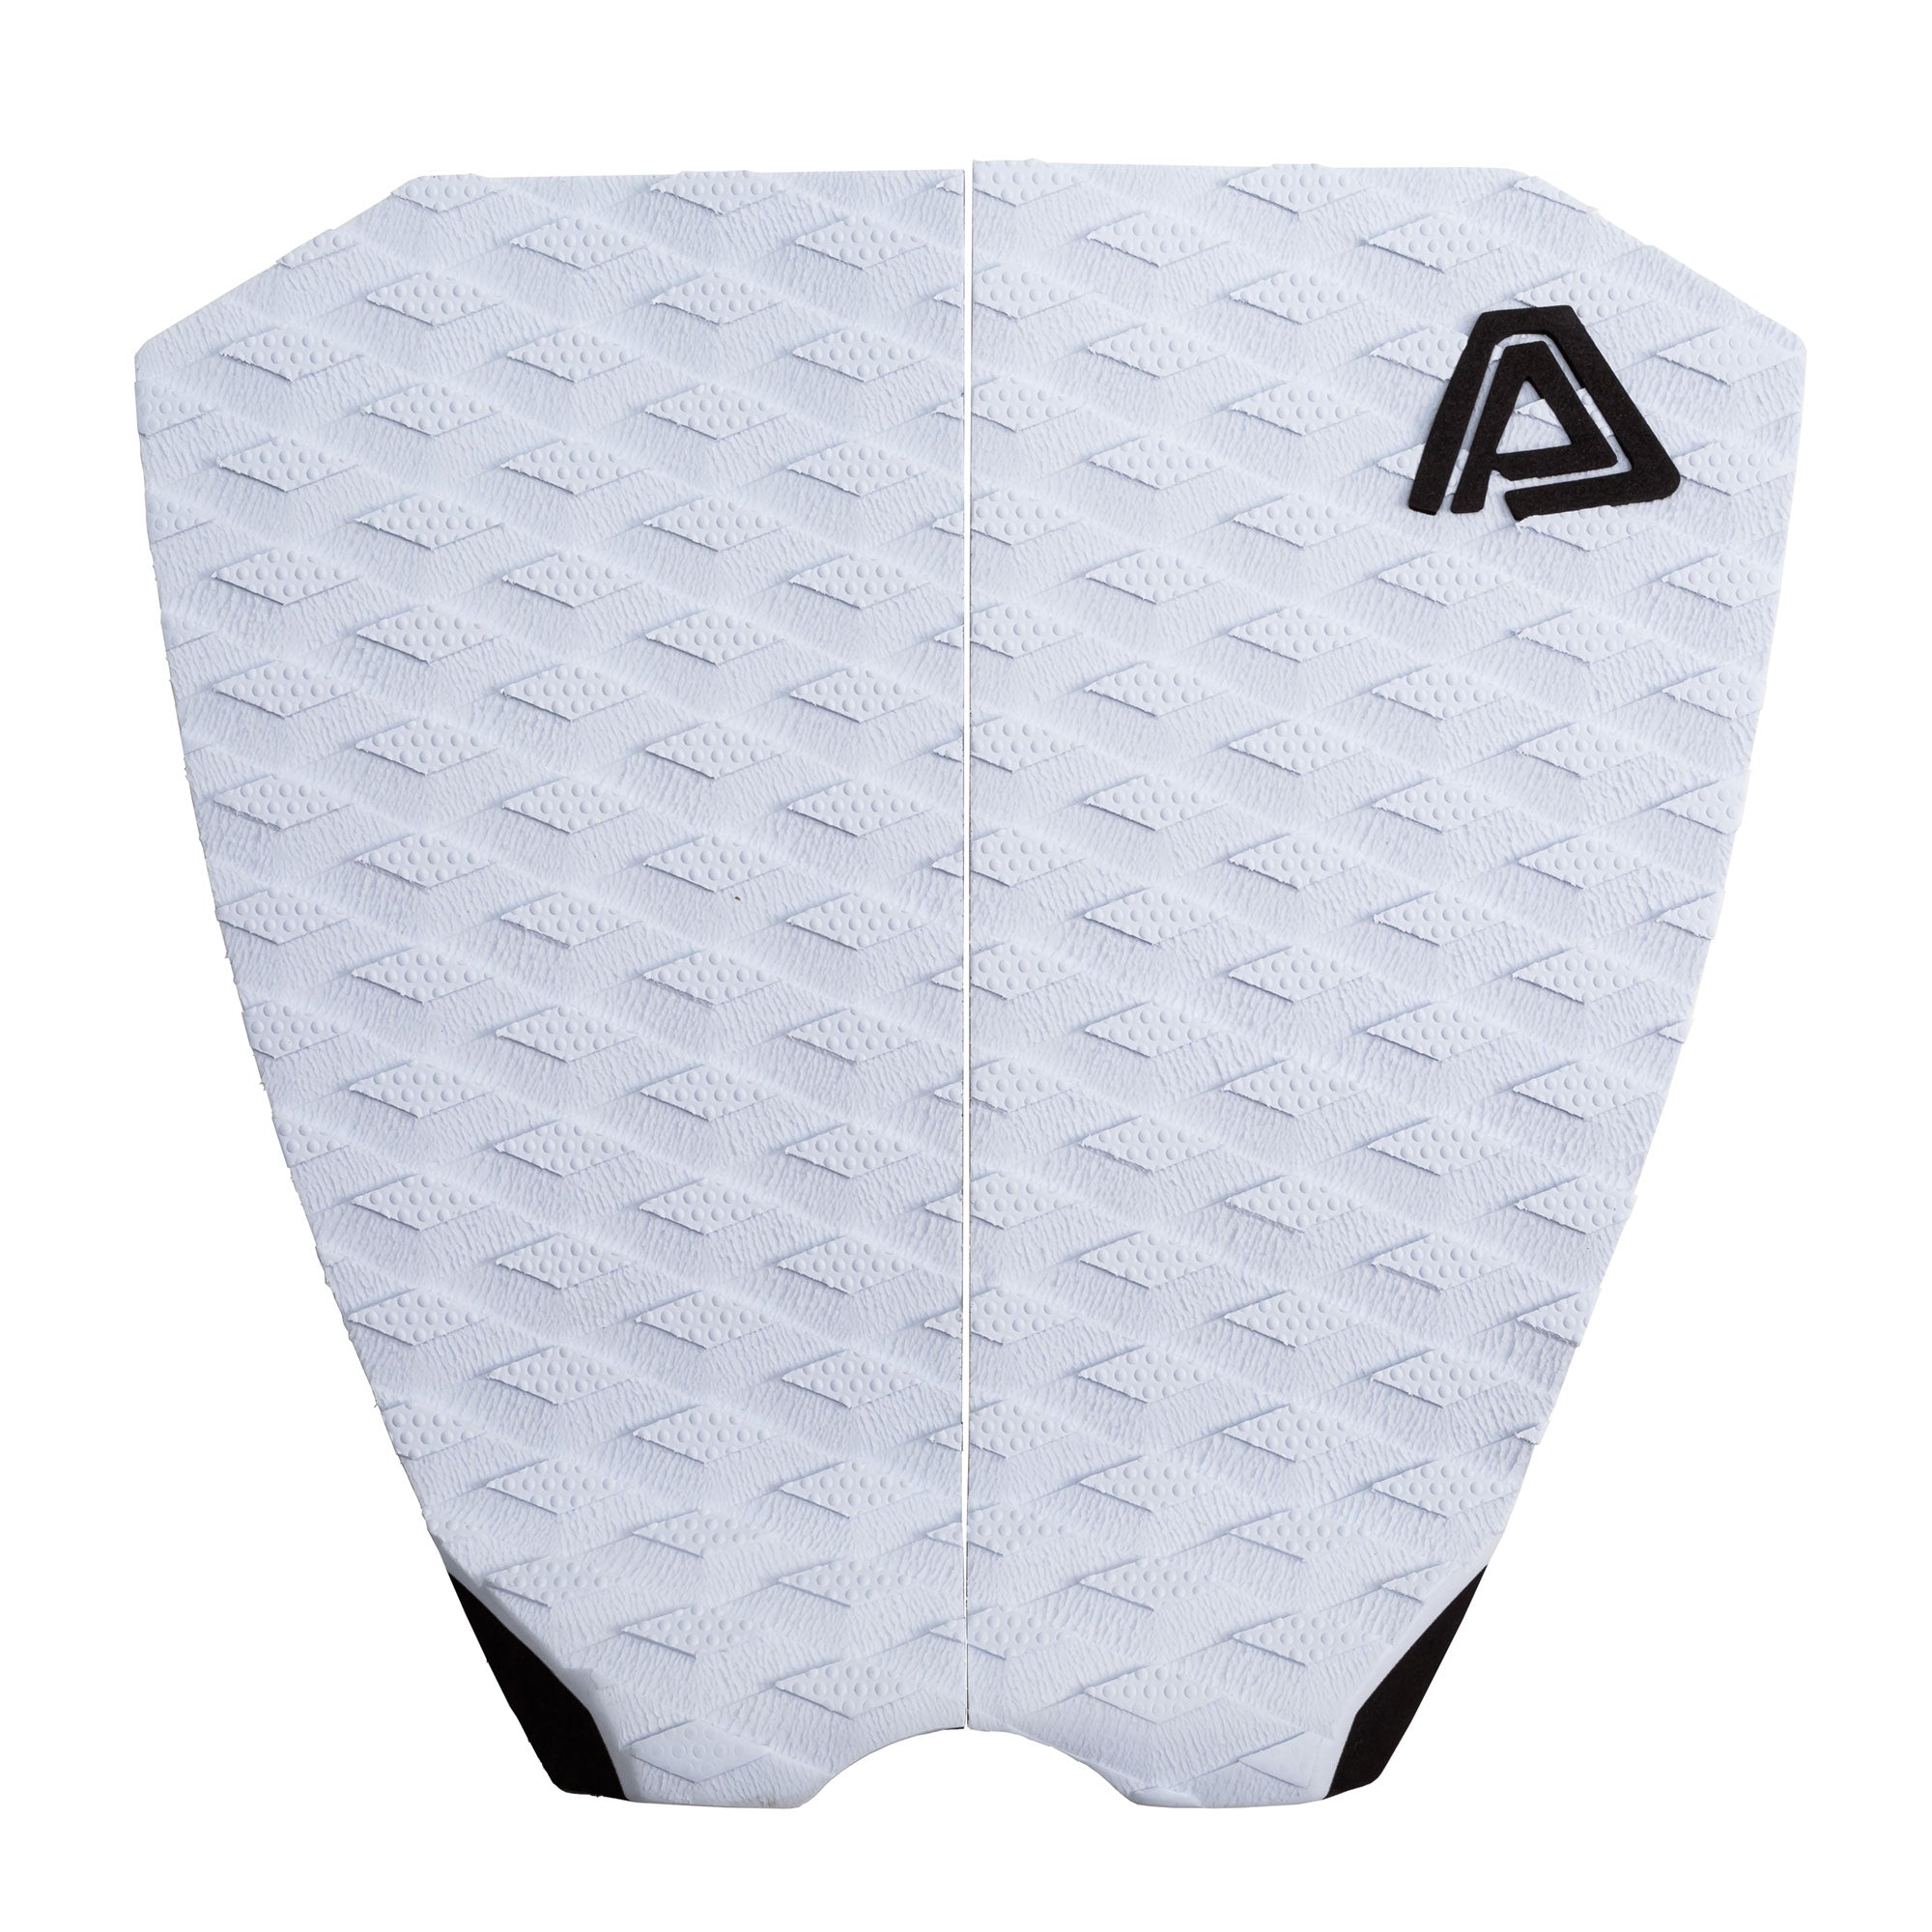 Arcade Surfboard Traction Pad 2 Piece - Santa Cruz Surf Shop™